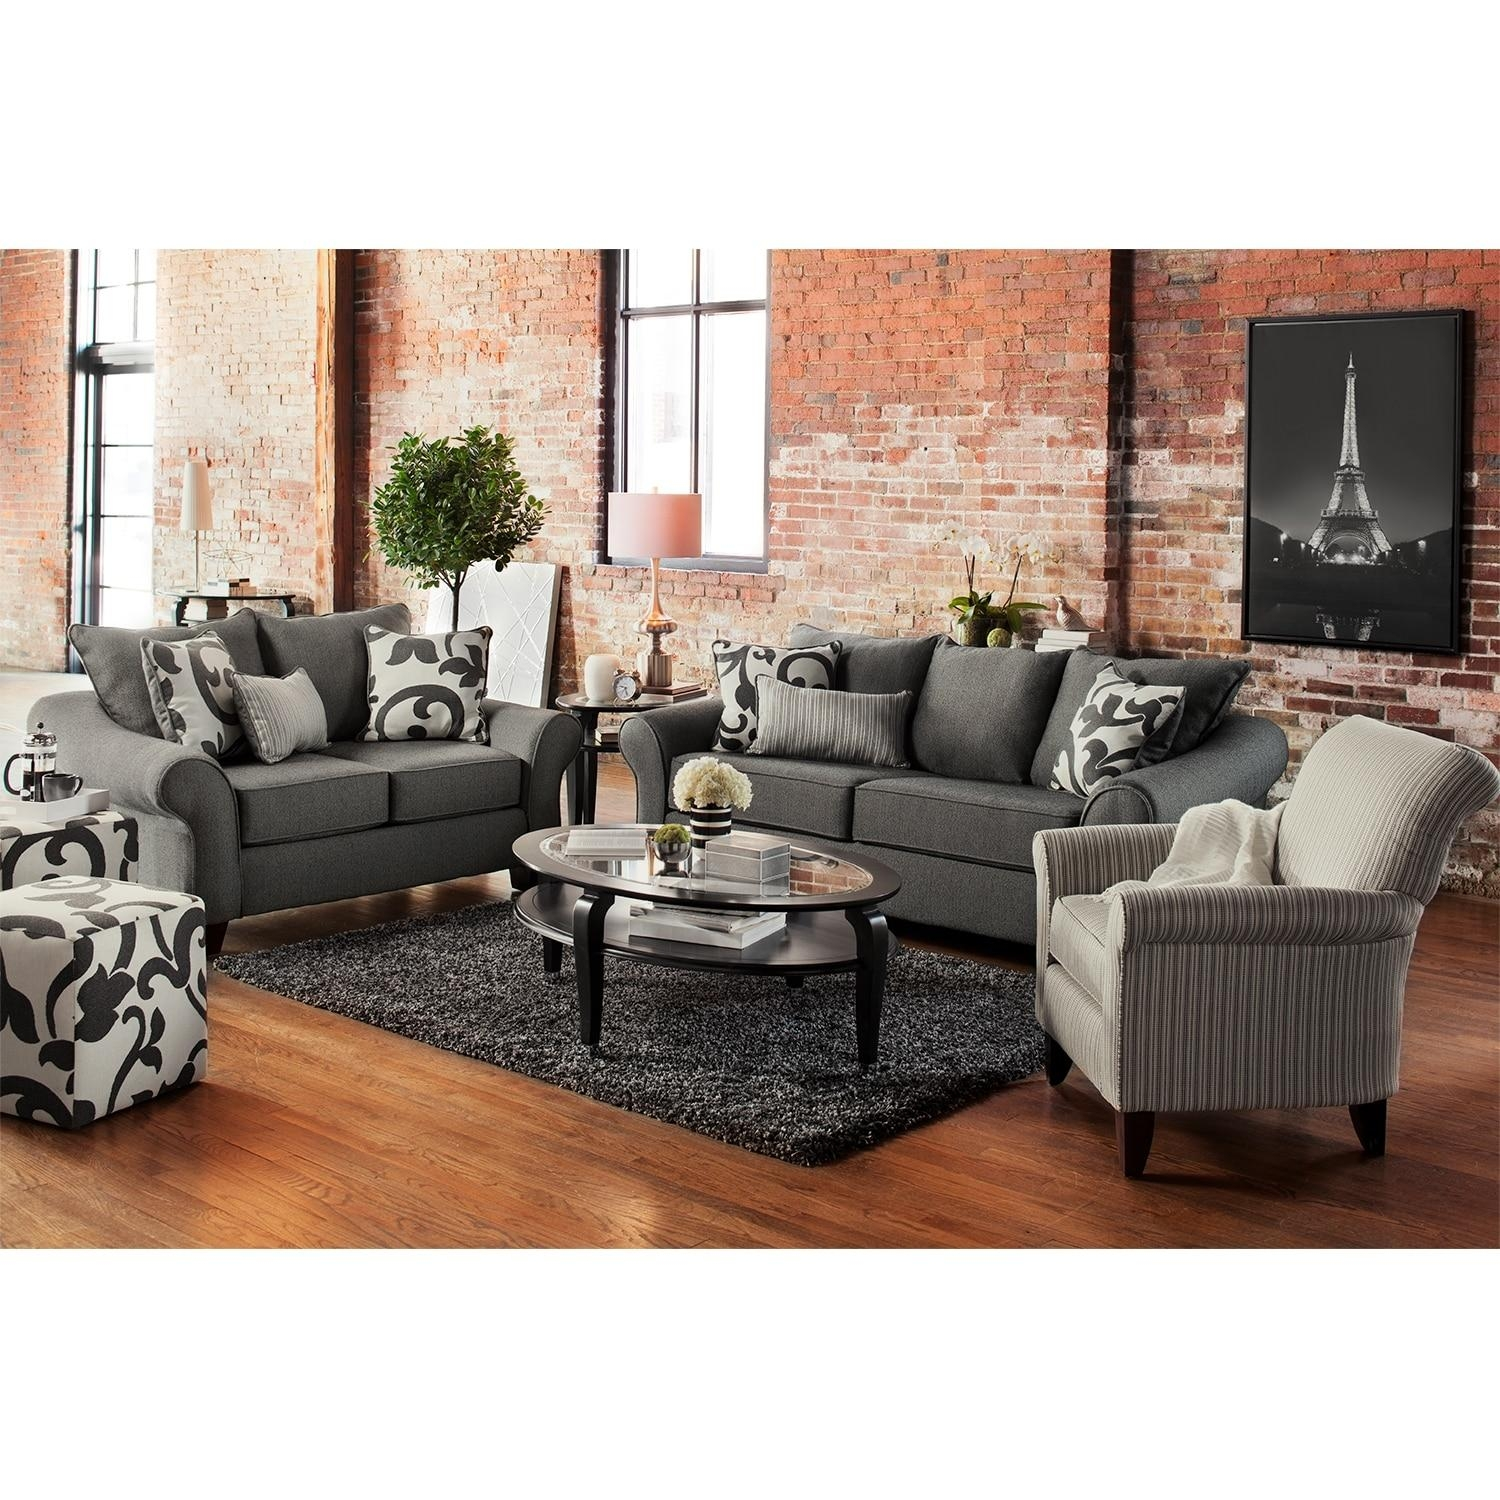 Colette Sofa, Loveseat And Accent Chair Set – Gray | American For Sofa Loveseat And Chair Set (Image 7 of 20)